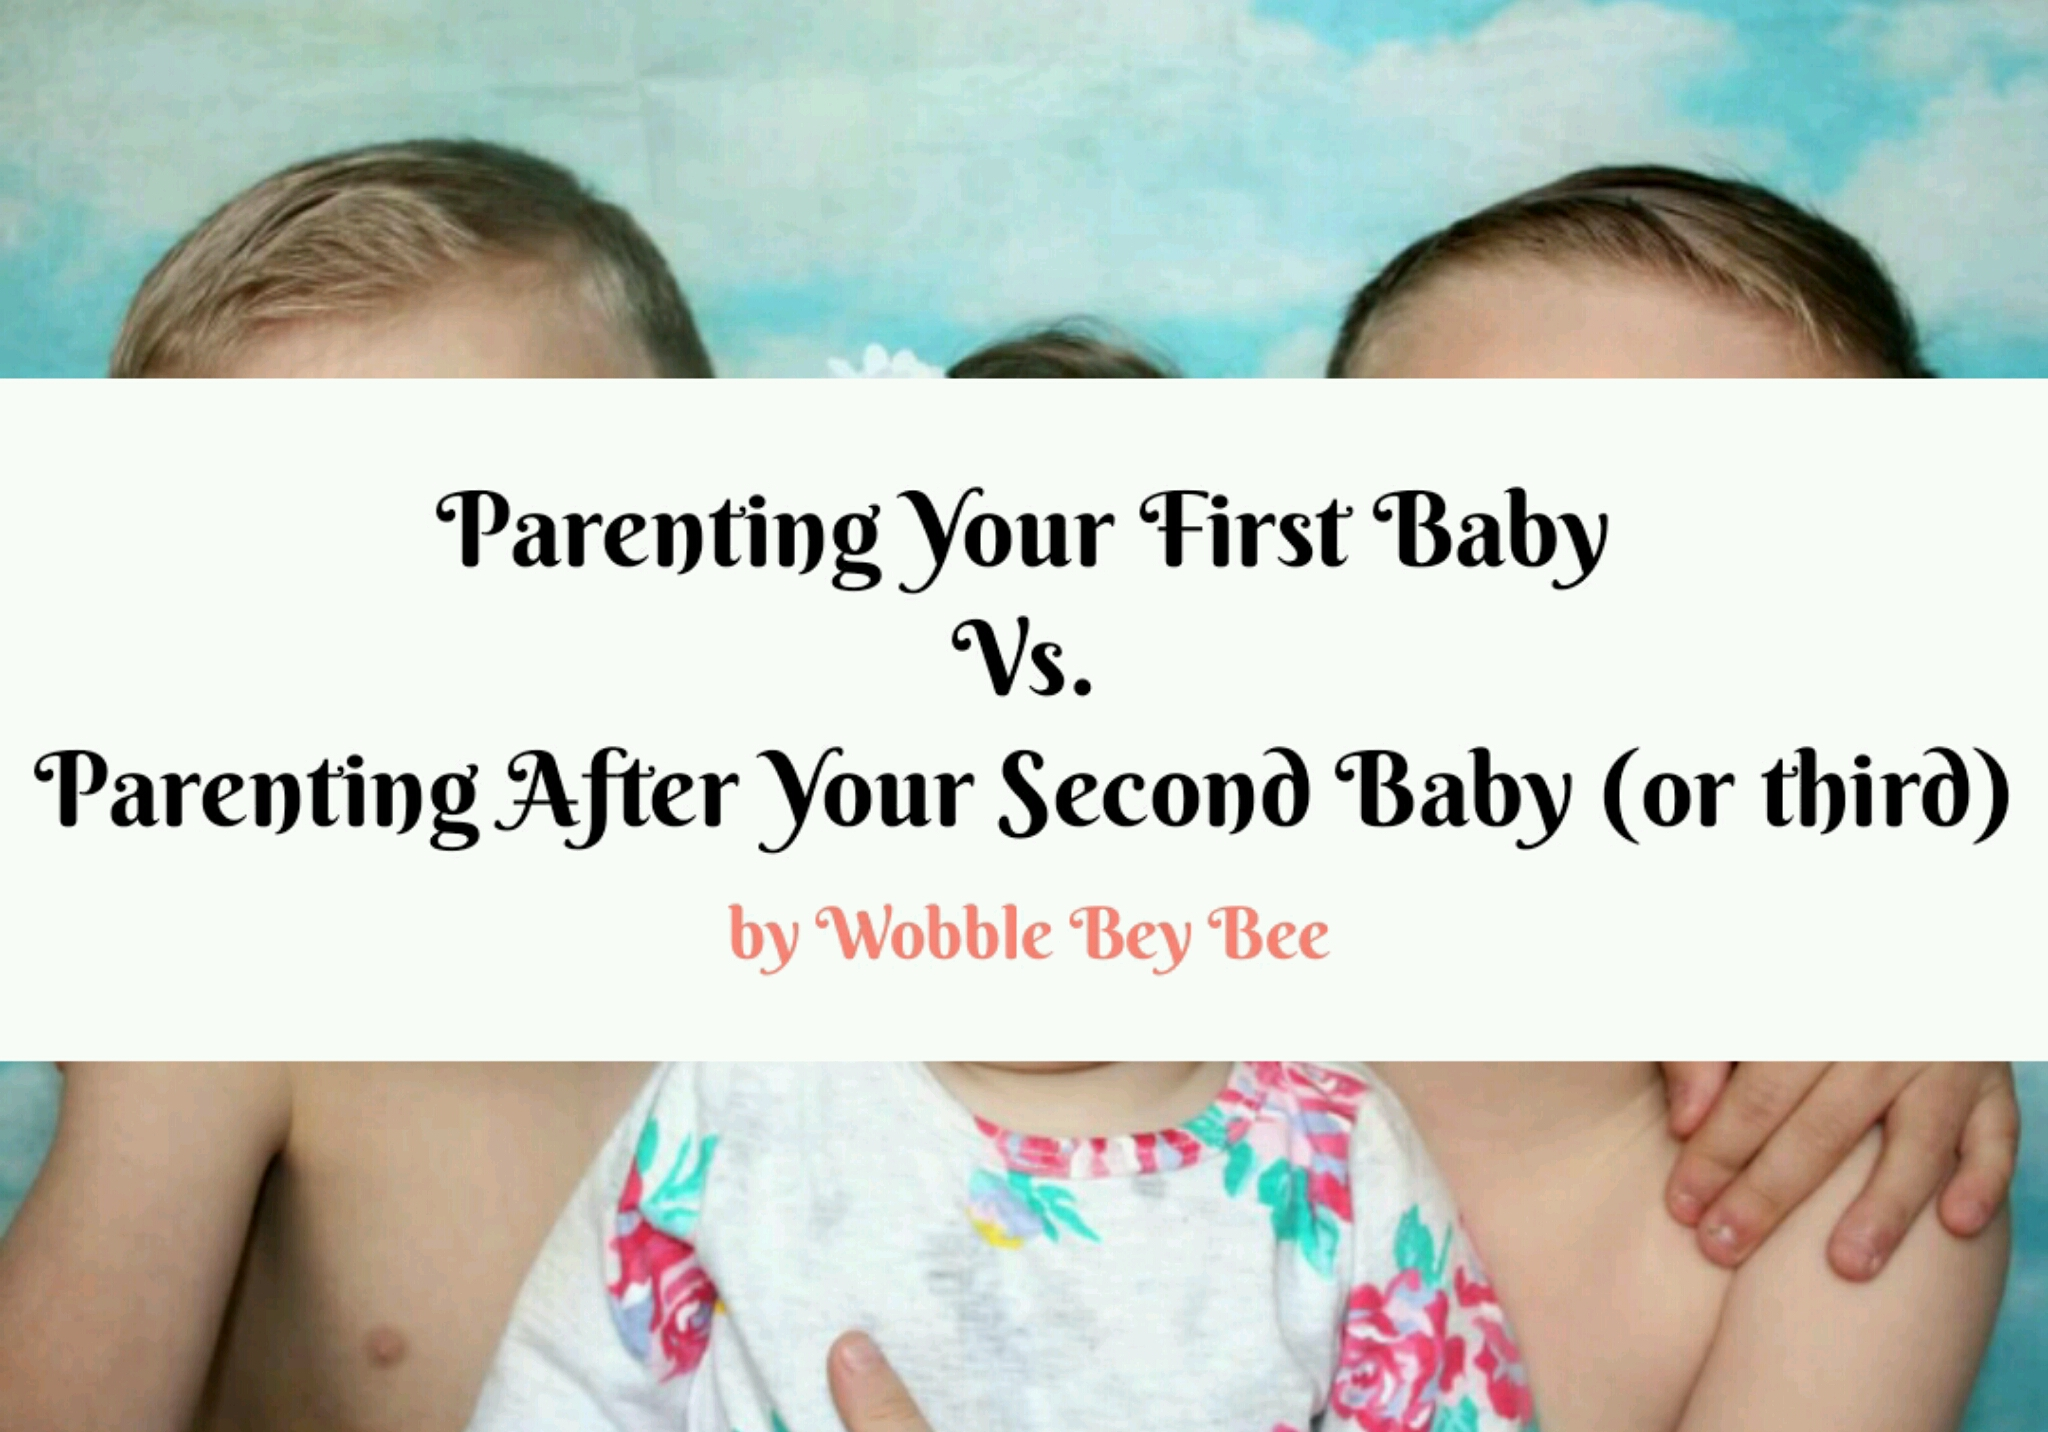 Parenting Your First Baby Vs. Parenting After Your Second Baby (or third)